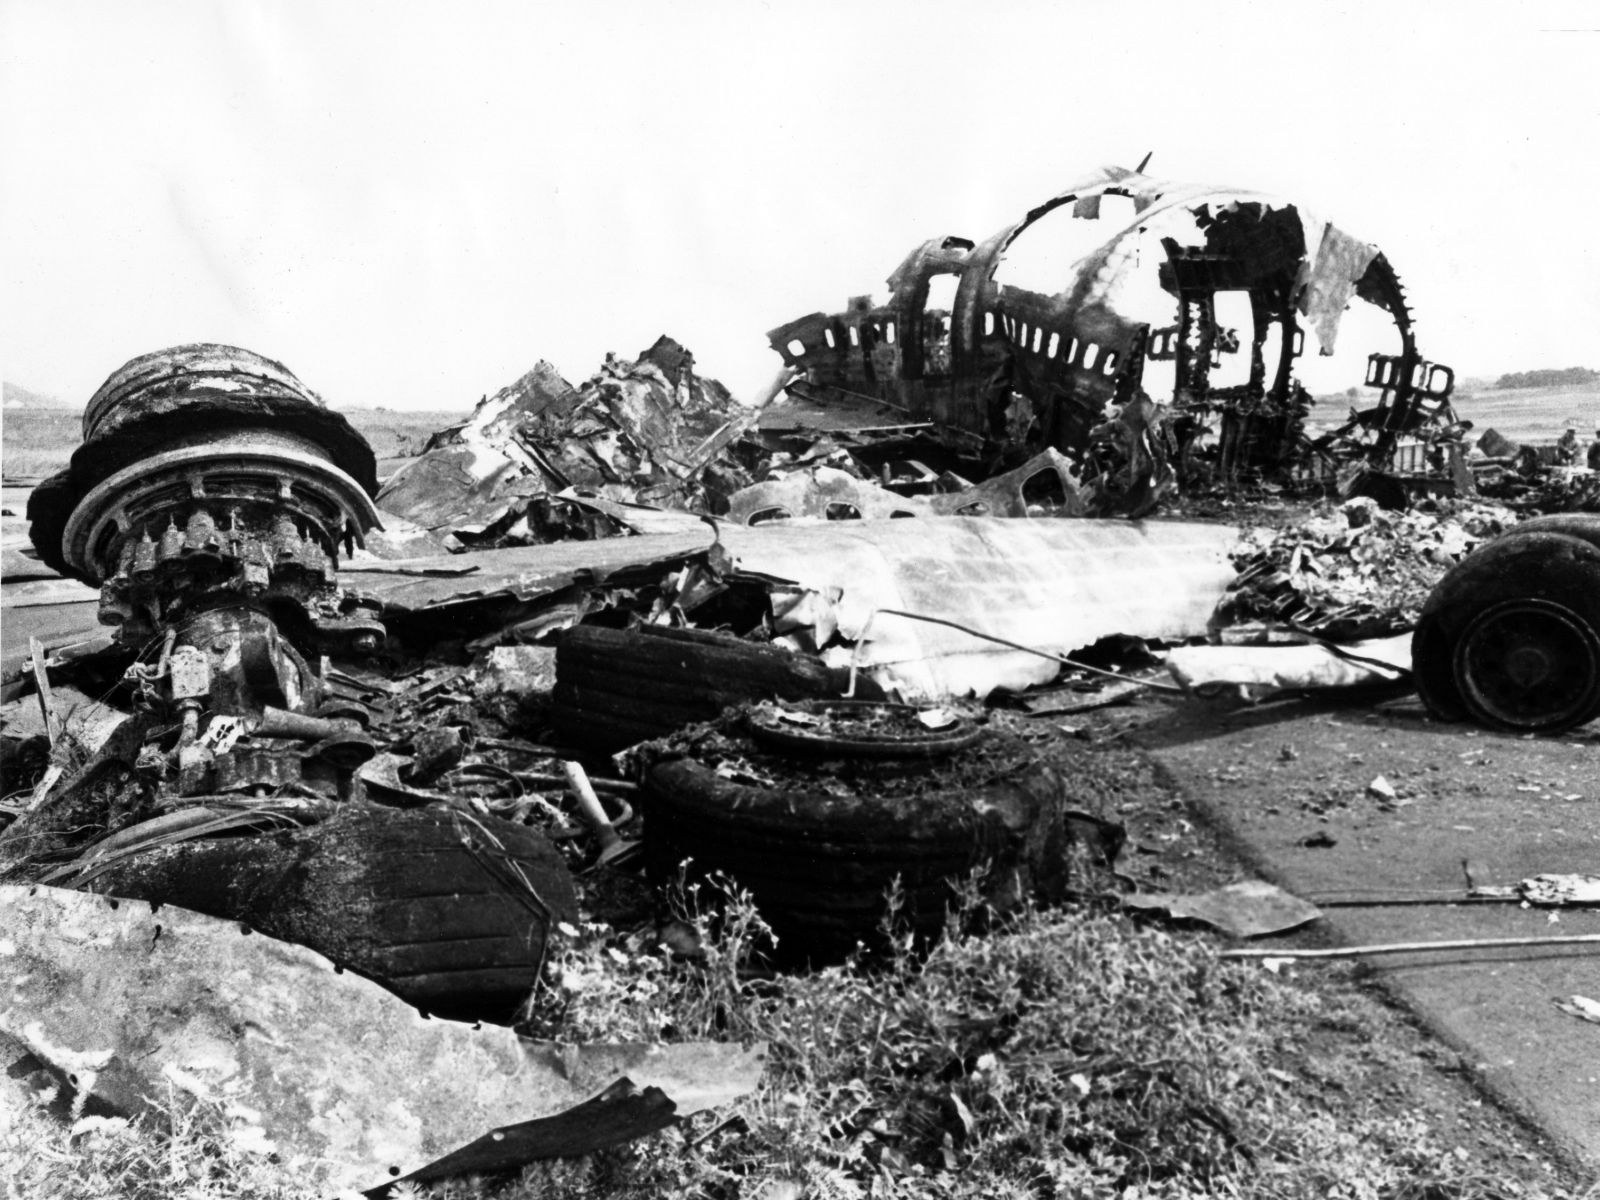 The wreckage of the Pan American World Airways 747 aircraft and KLM Boeing 747 jumbo jet lie at the airport in Santa Cruz de Tenerife, Canary Islands, Spain, Monday, March 28, 1977. 583 people died yesterday, after the two planes collided in foggy weather. (AP Photo)